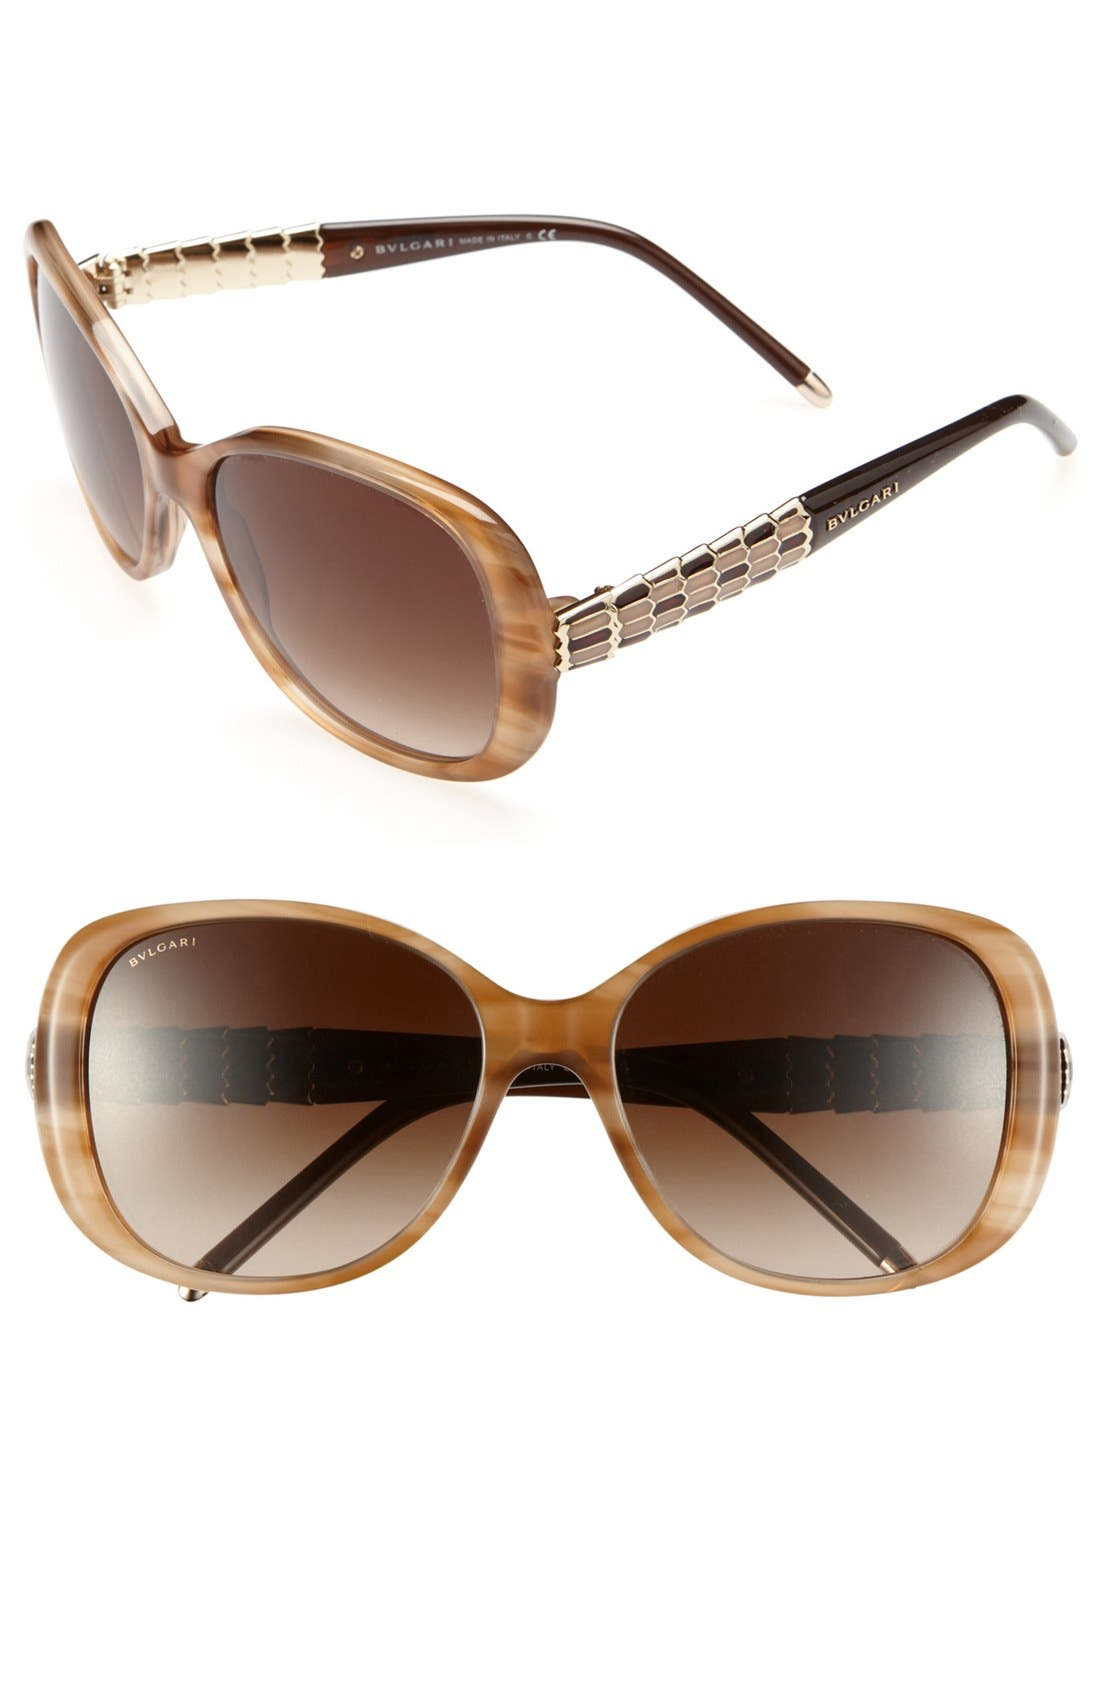 Main Image - BVLGARI 56mm Embellished Temple Sunglasses